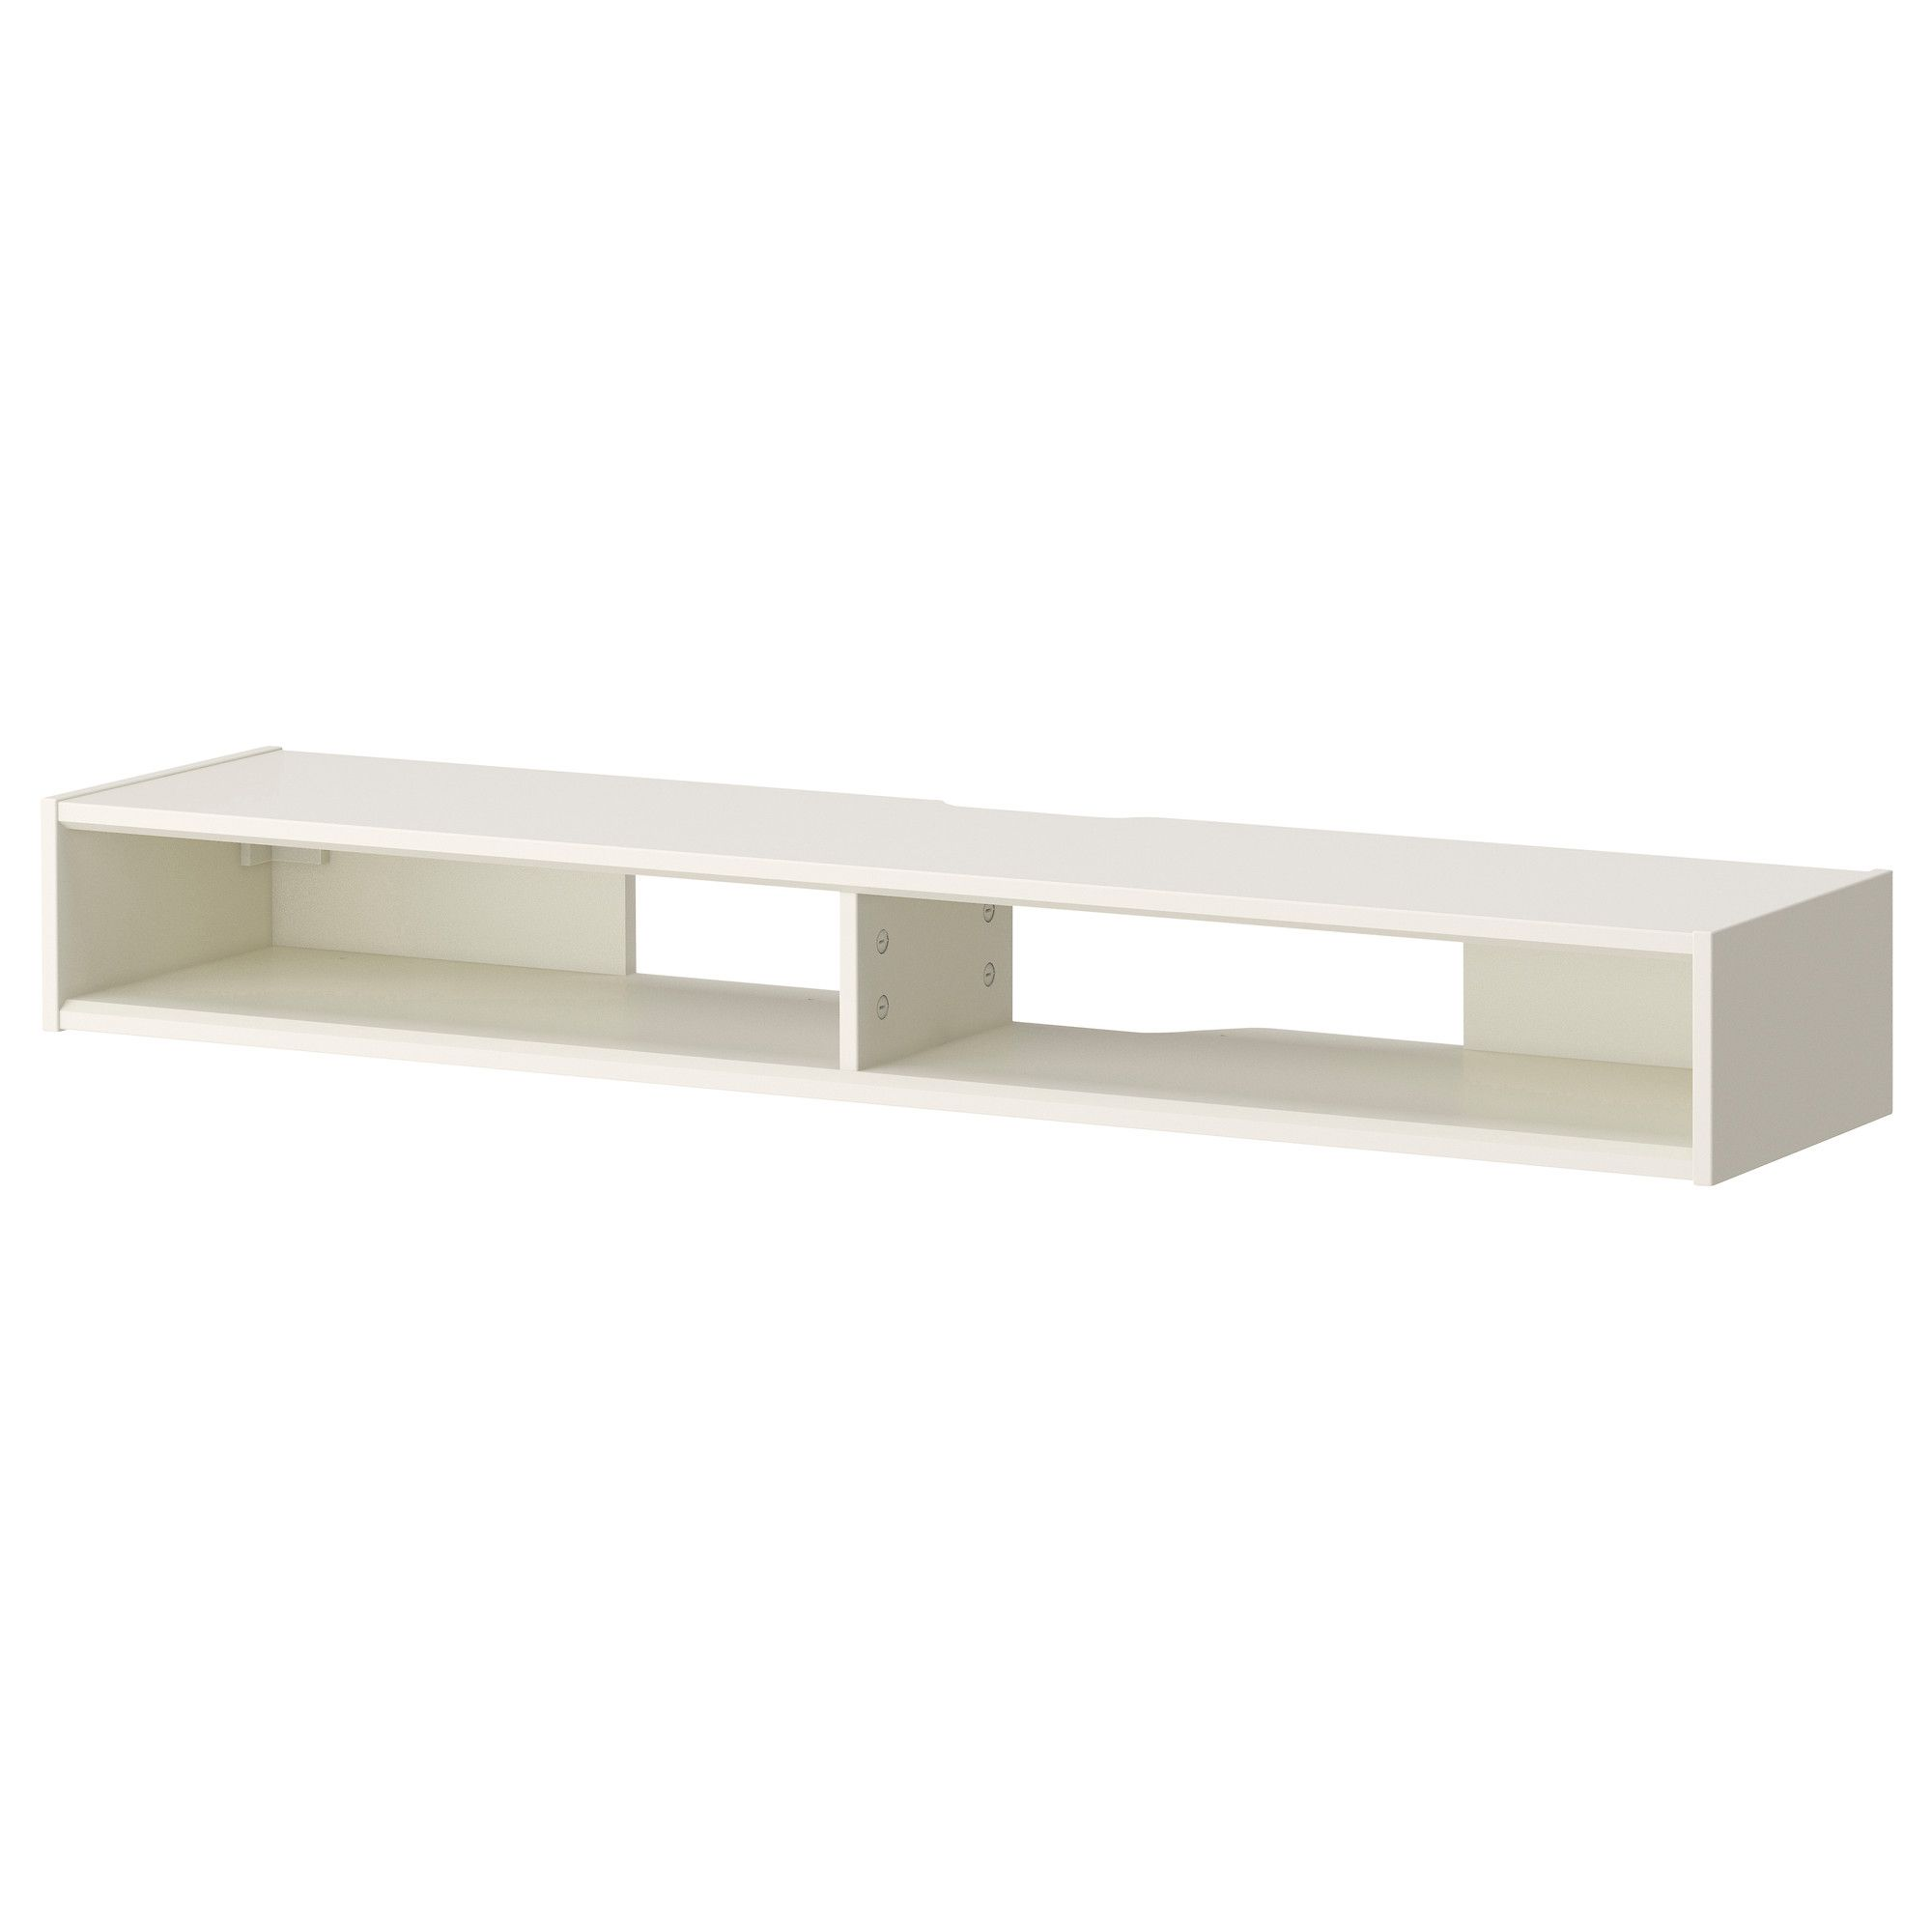 Rams tra tablette m dia ikea basement renos for Meuble 77 cm hauteur